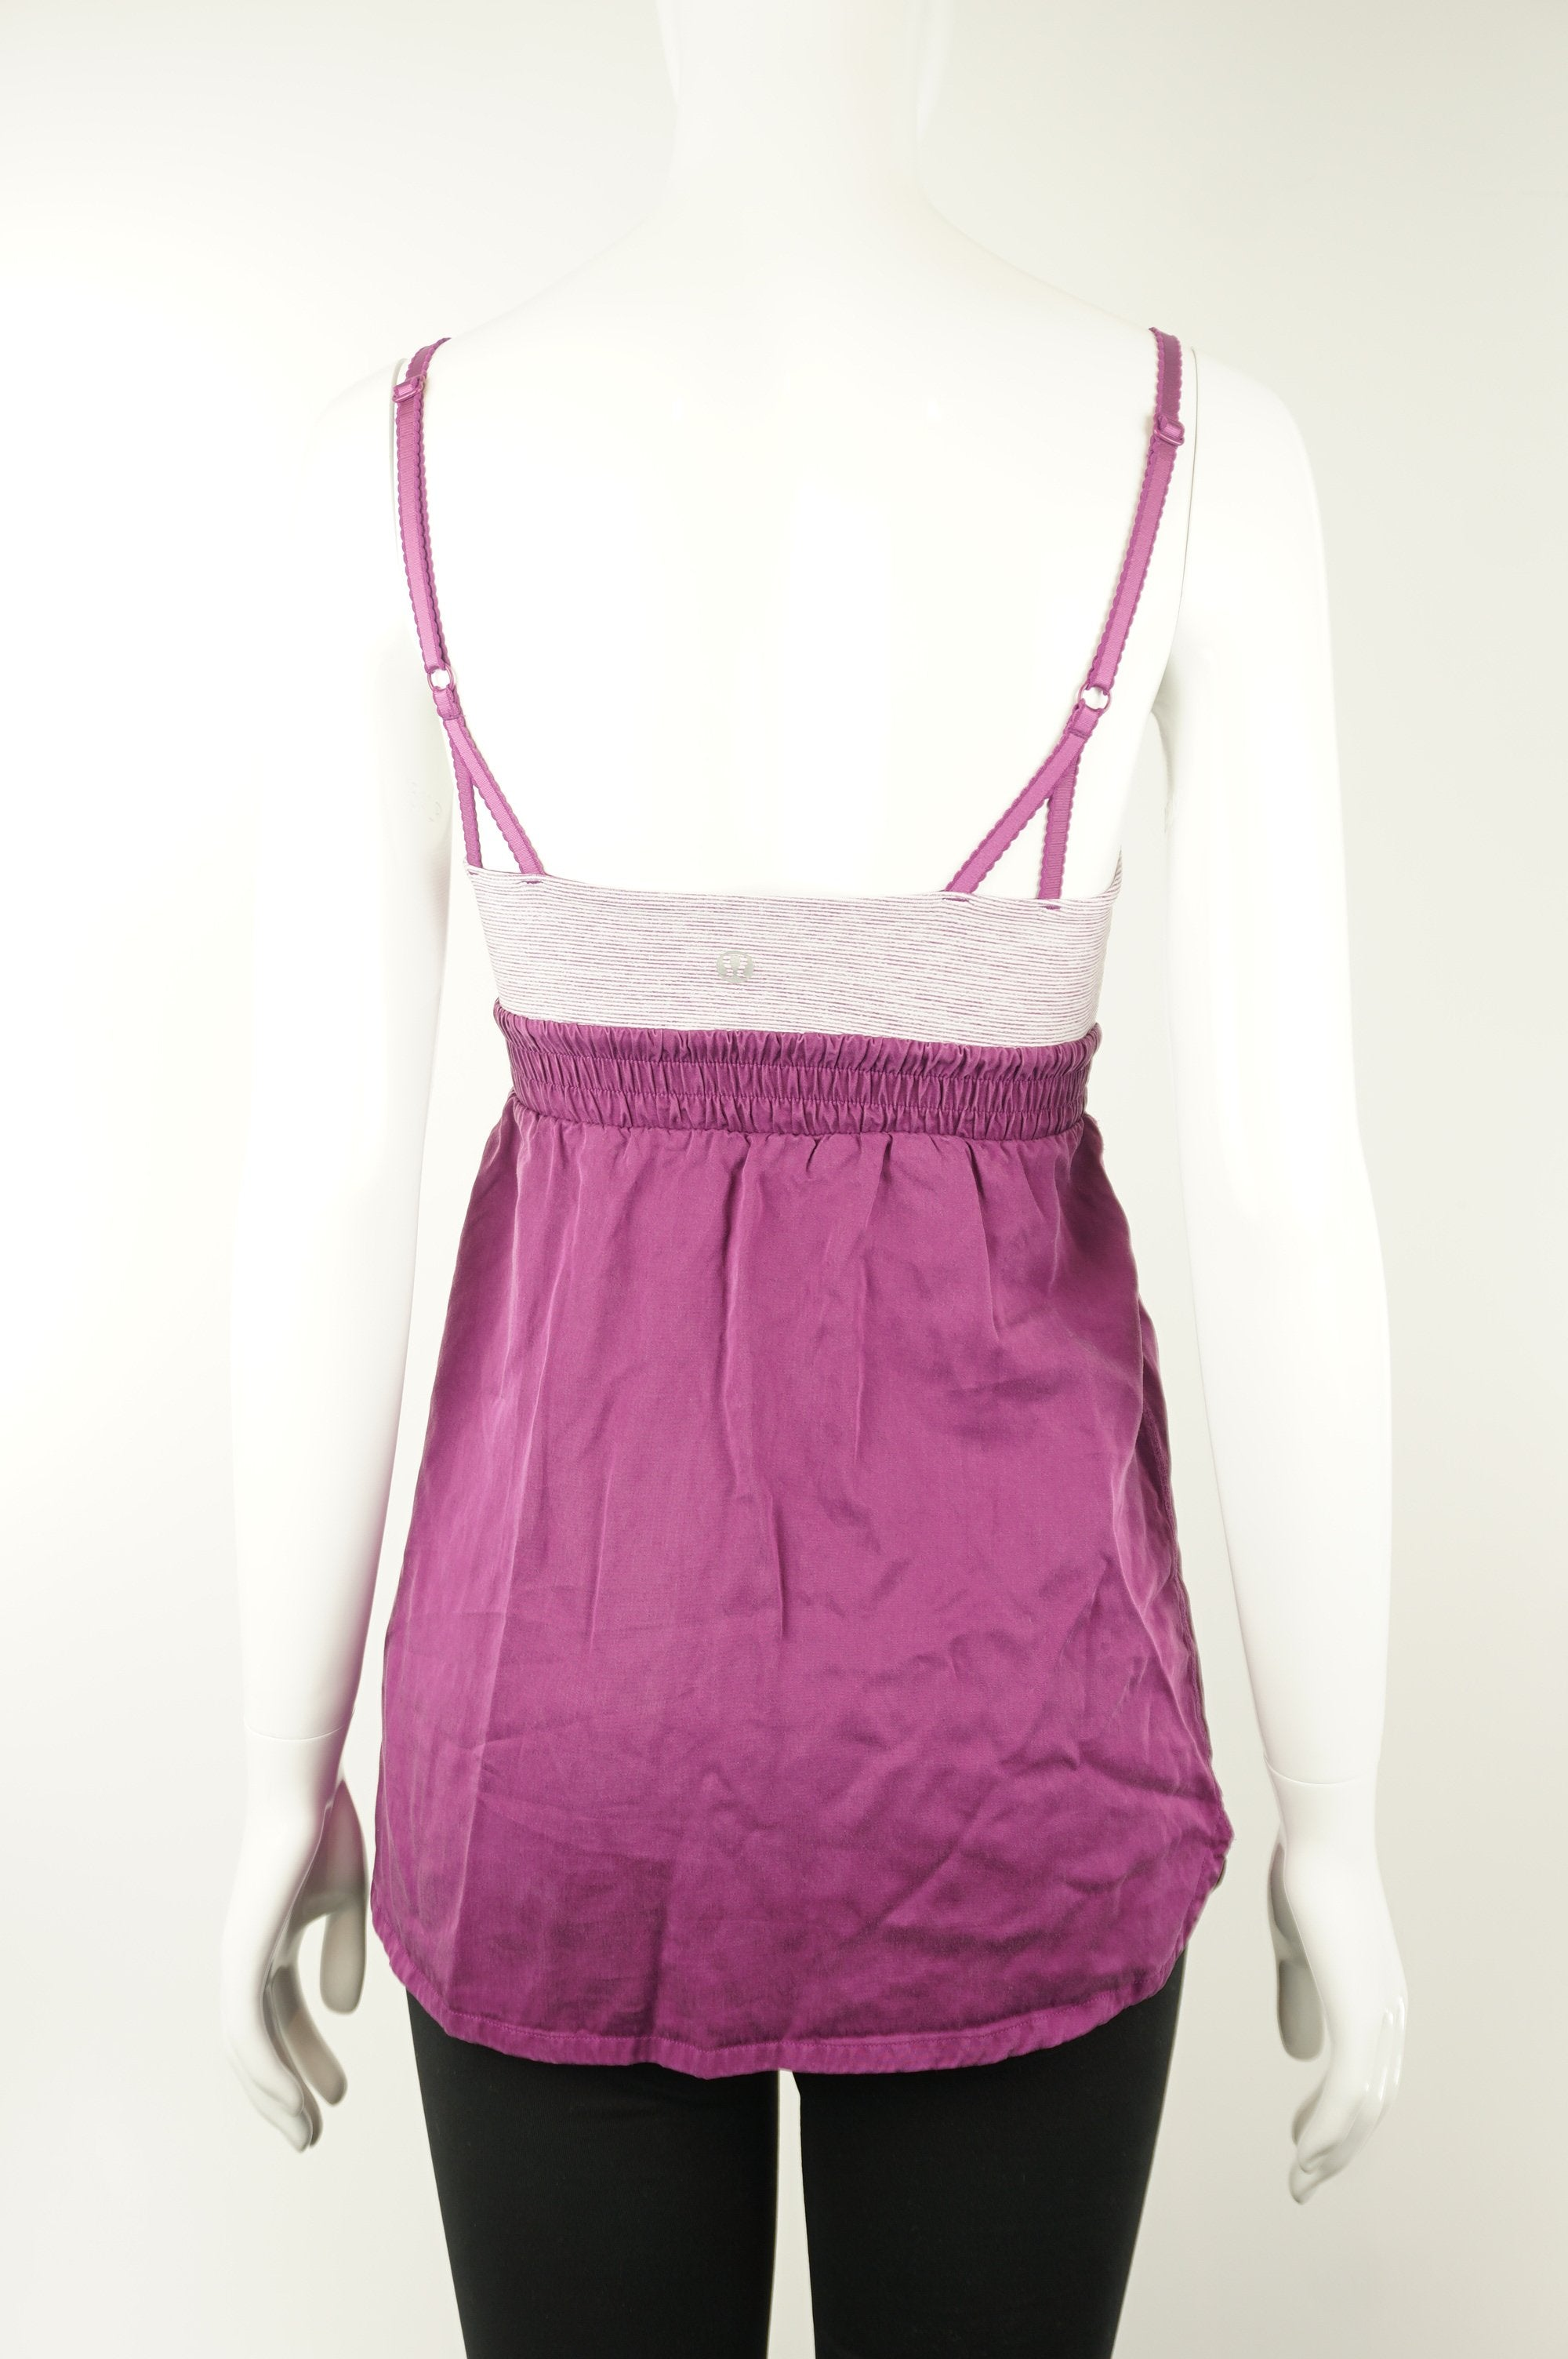 Lululemon Athletic Top, Women or girls top. Lululemon size 4. https://info.lululemon.com/help/size-chart, Purple, Nylon, Lycra, and Spandex, Yoga, yoga pants, women's athletic wear, women's work out clothes, women's comfortable pants, fitness, fit